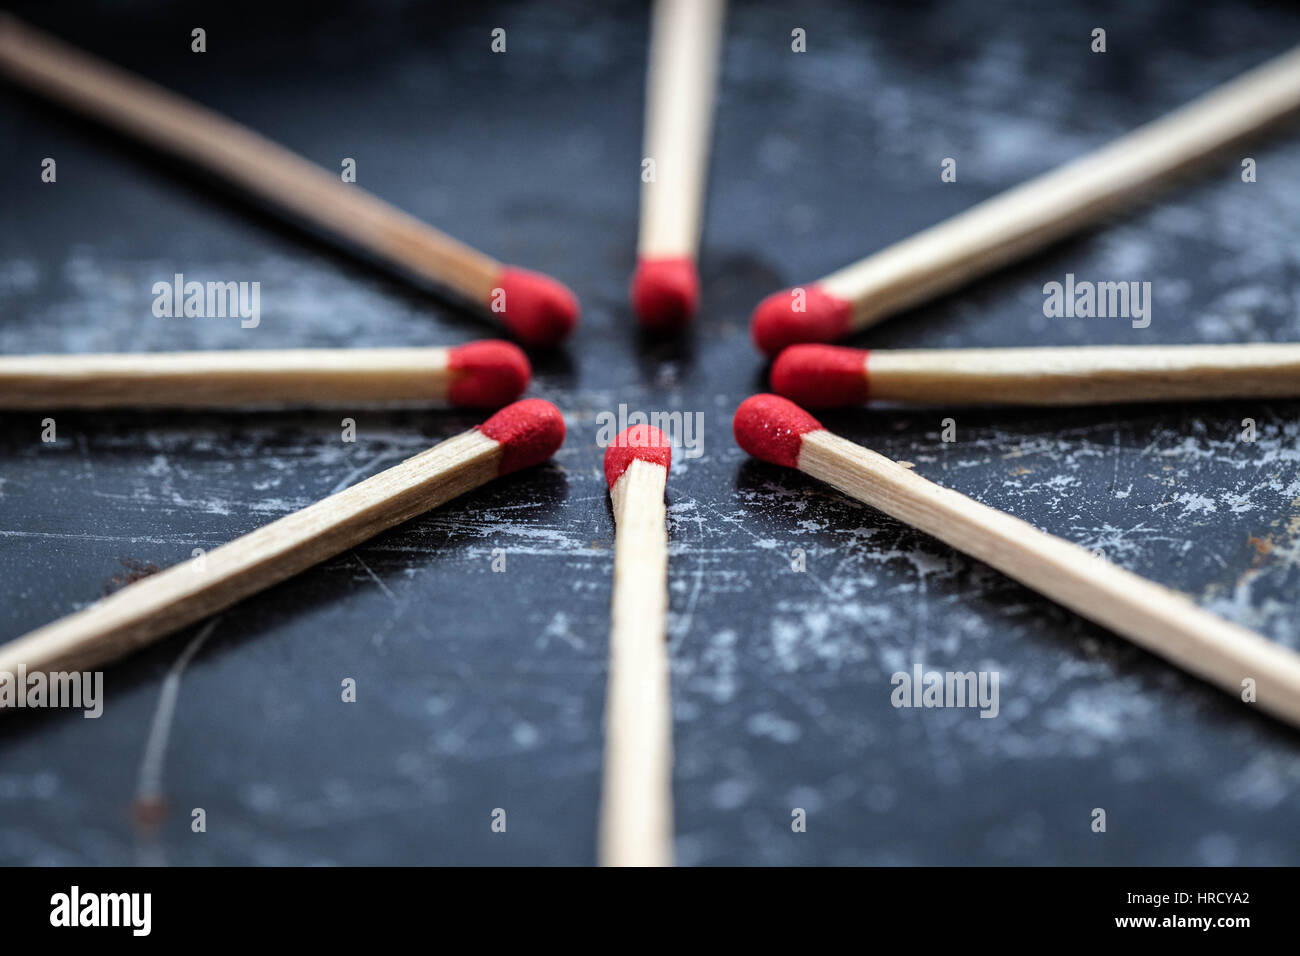 Converging matches - Stock Image